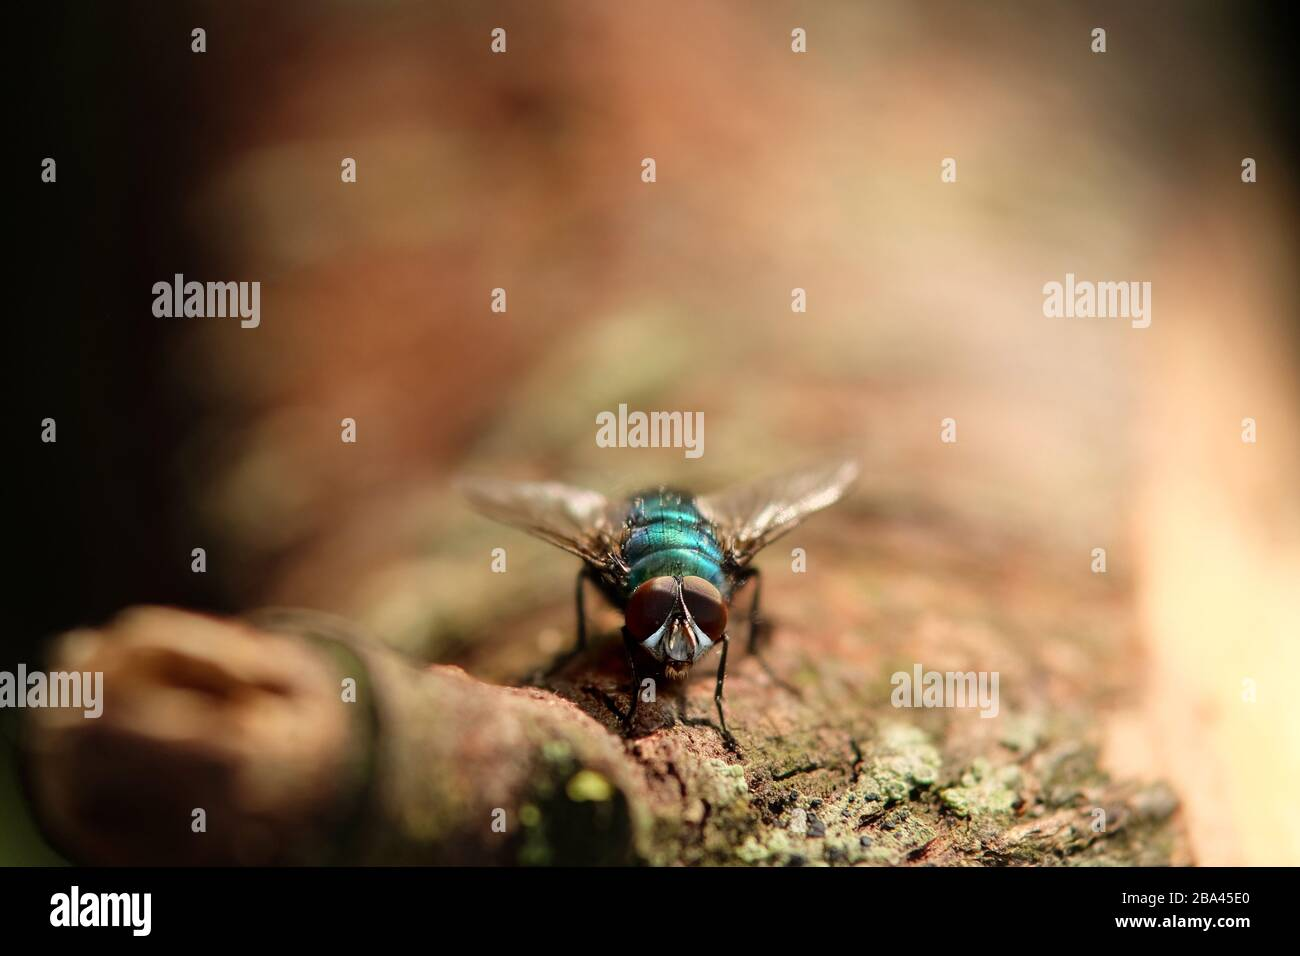 Close up of a fly sitting on a twig Stock Photo